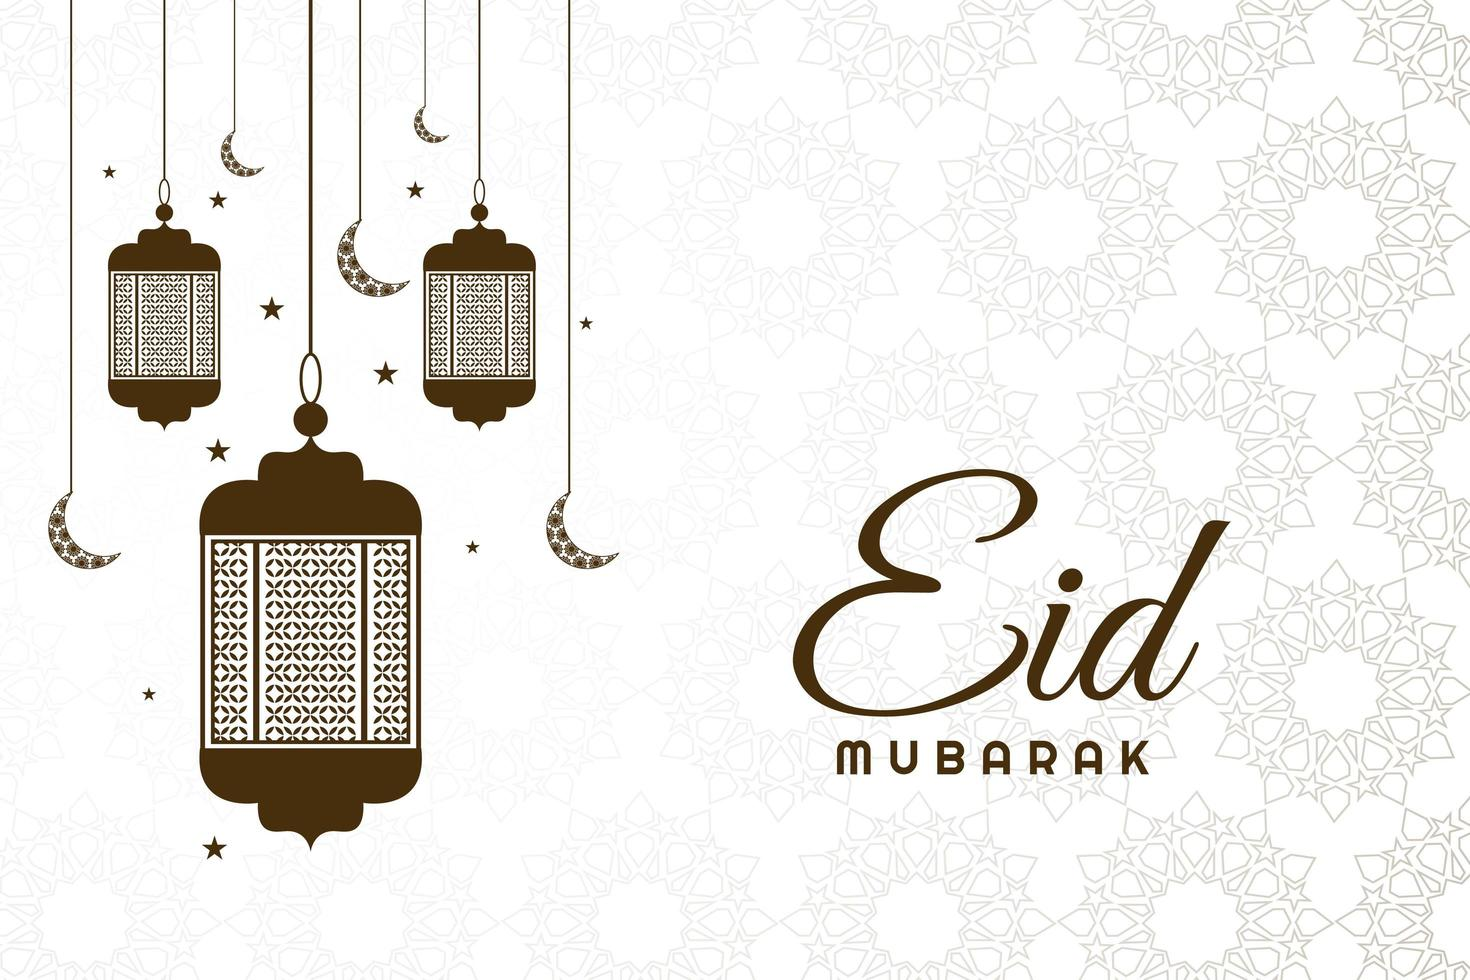 Eid Mubarak Brown Hanging Lanterns Background vector